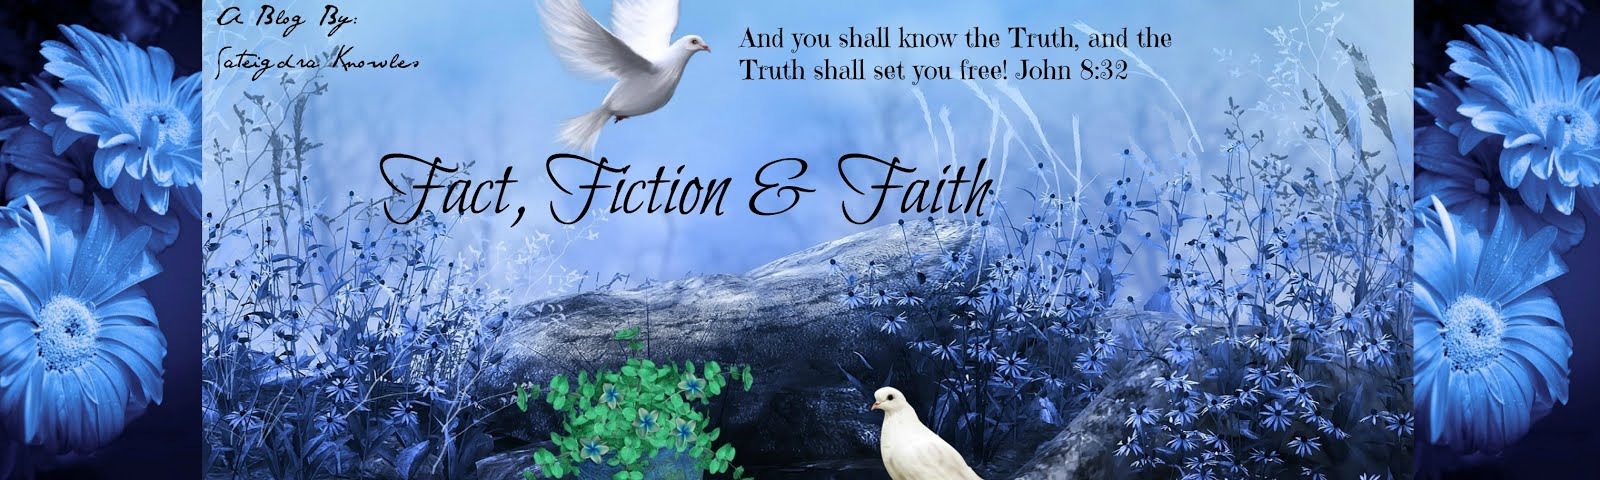 Fact, Fiction, and Faith!